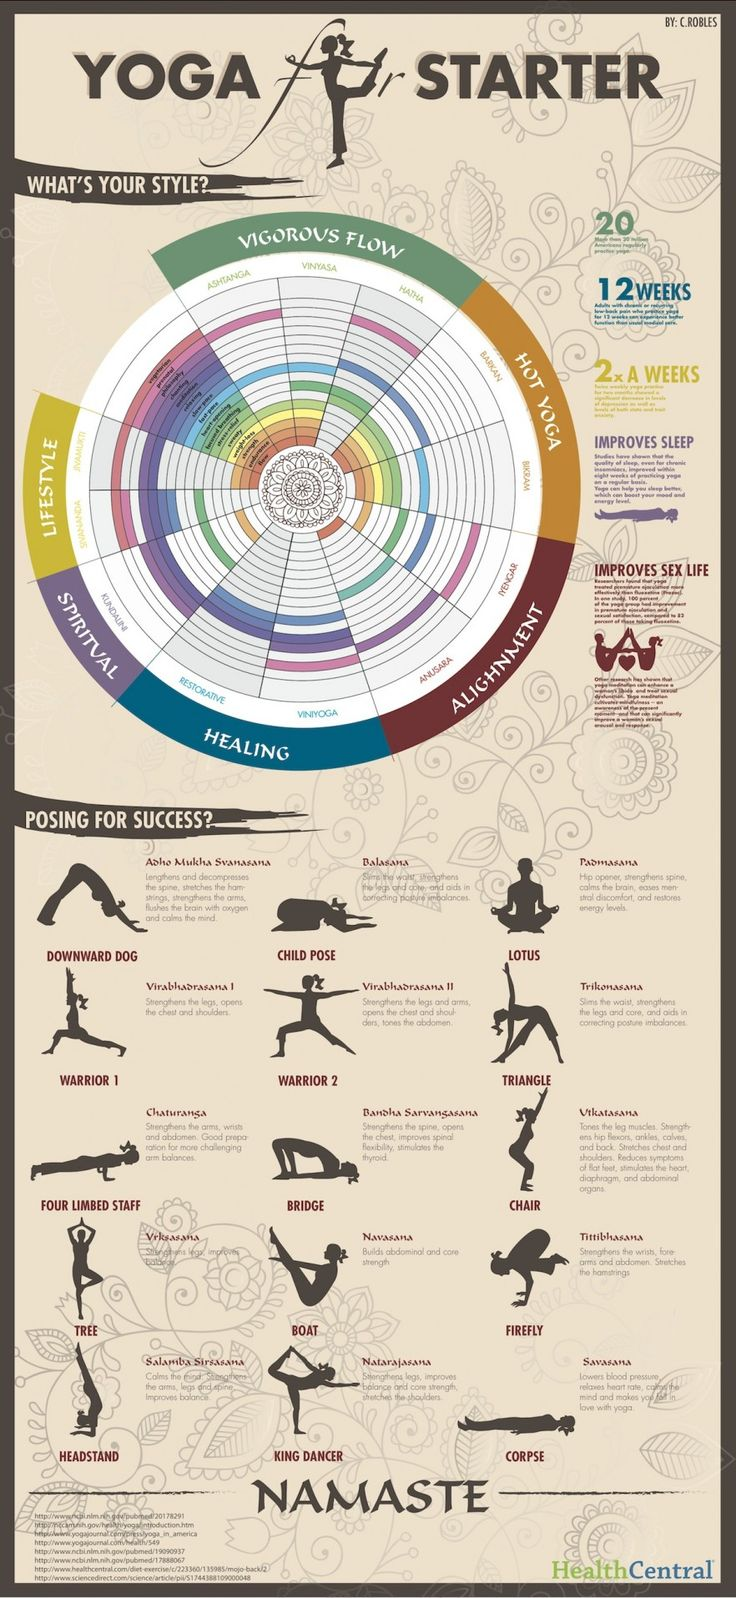 Yoga for Starters - Namaste   these are all very good poses for balance and flow of energy.